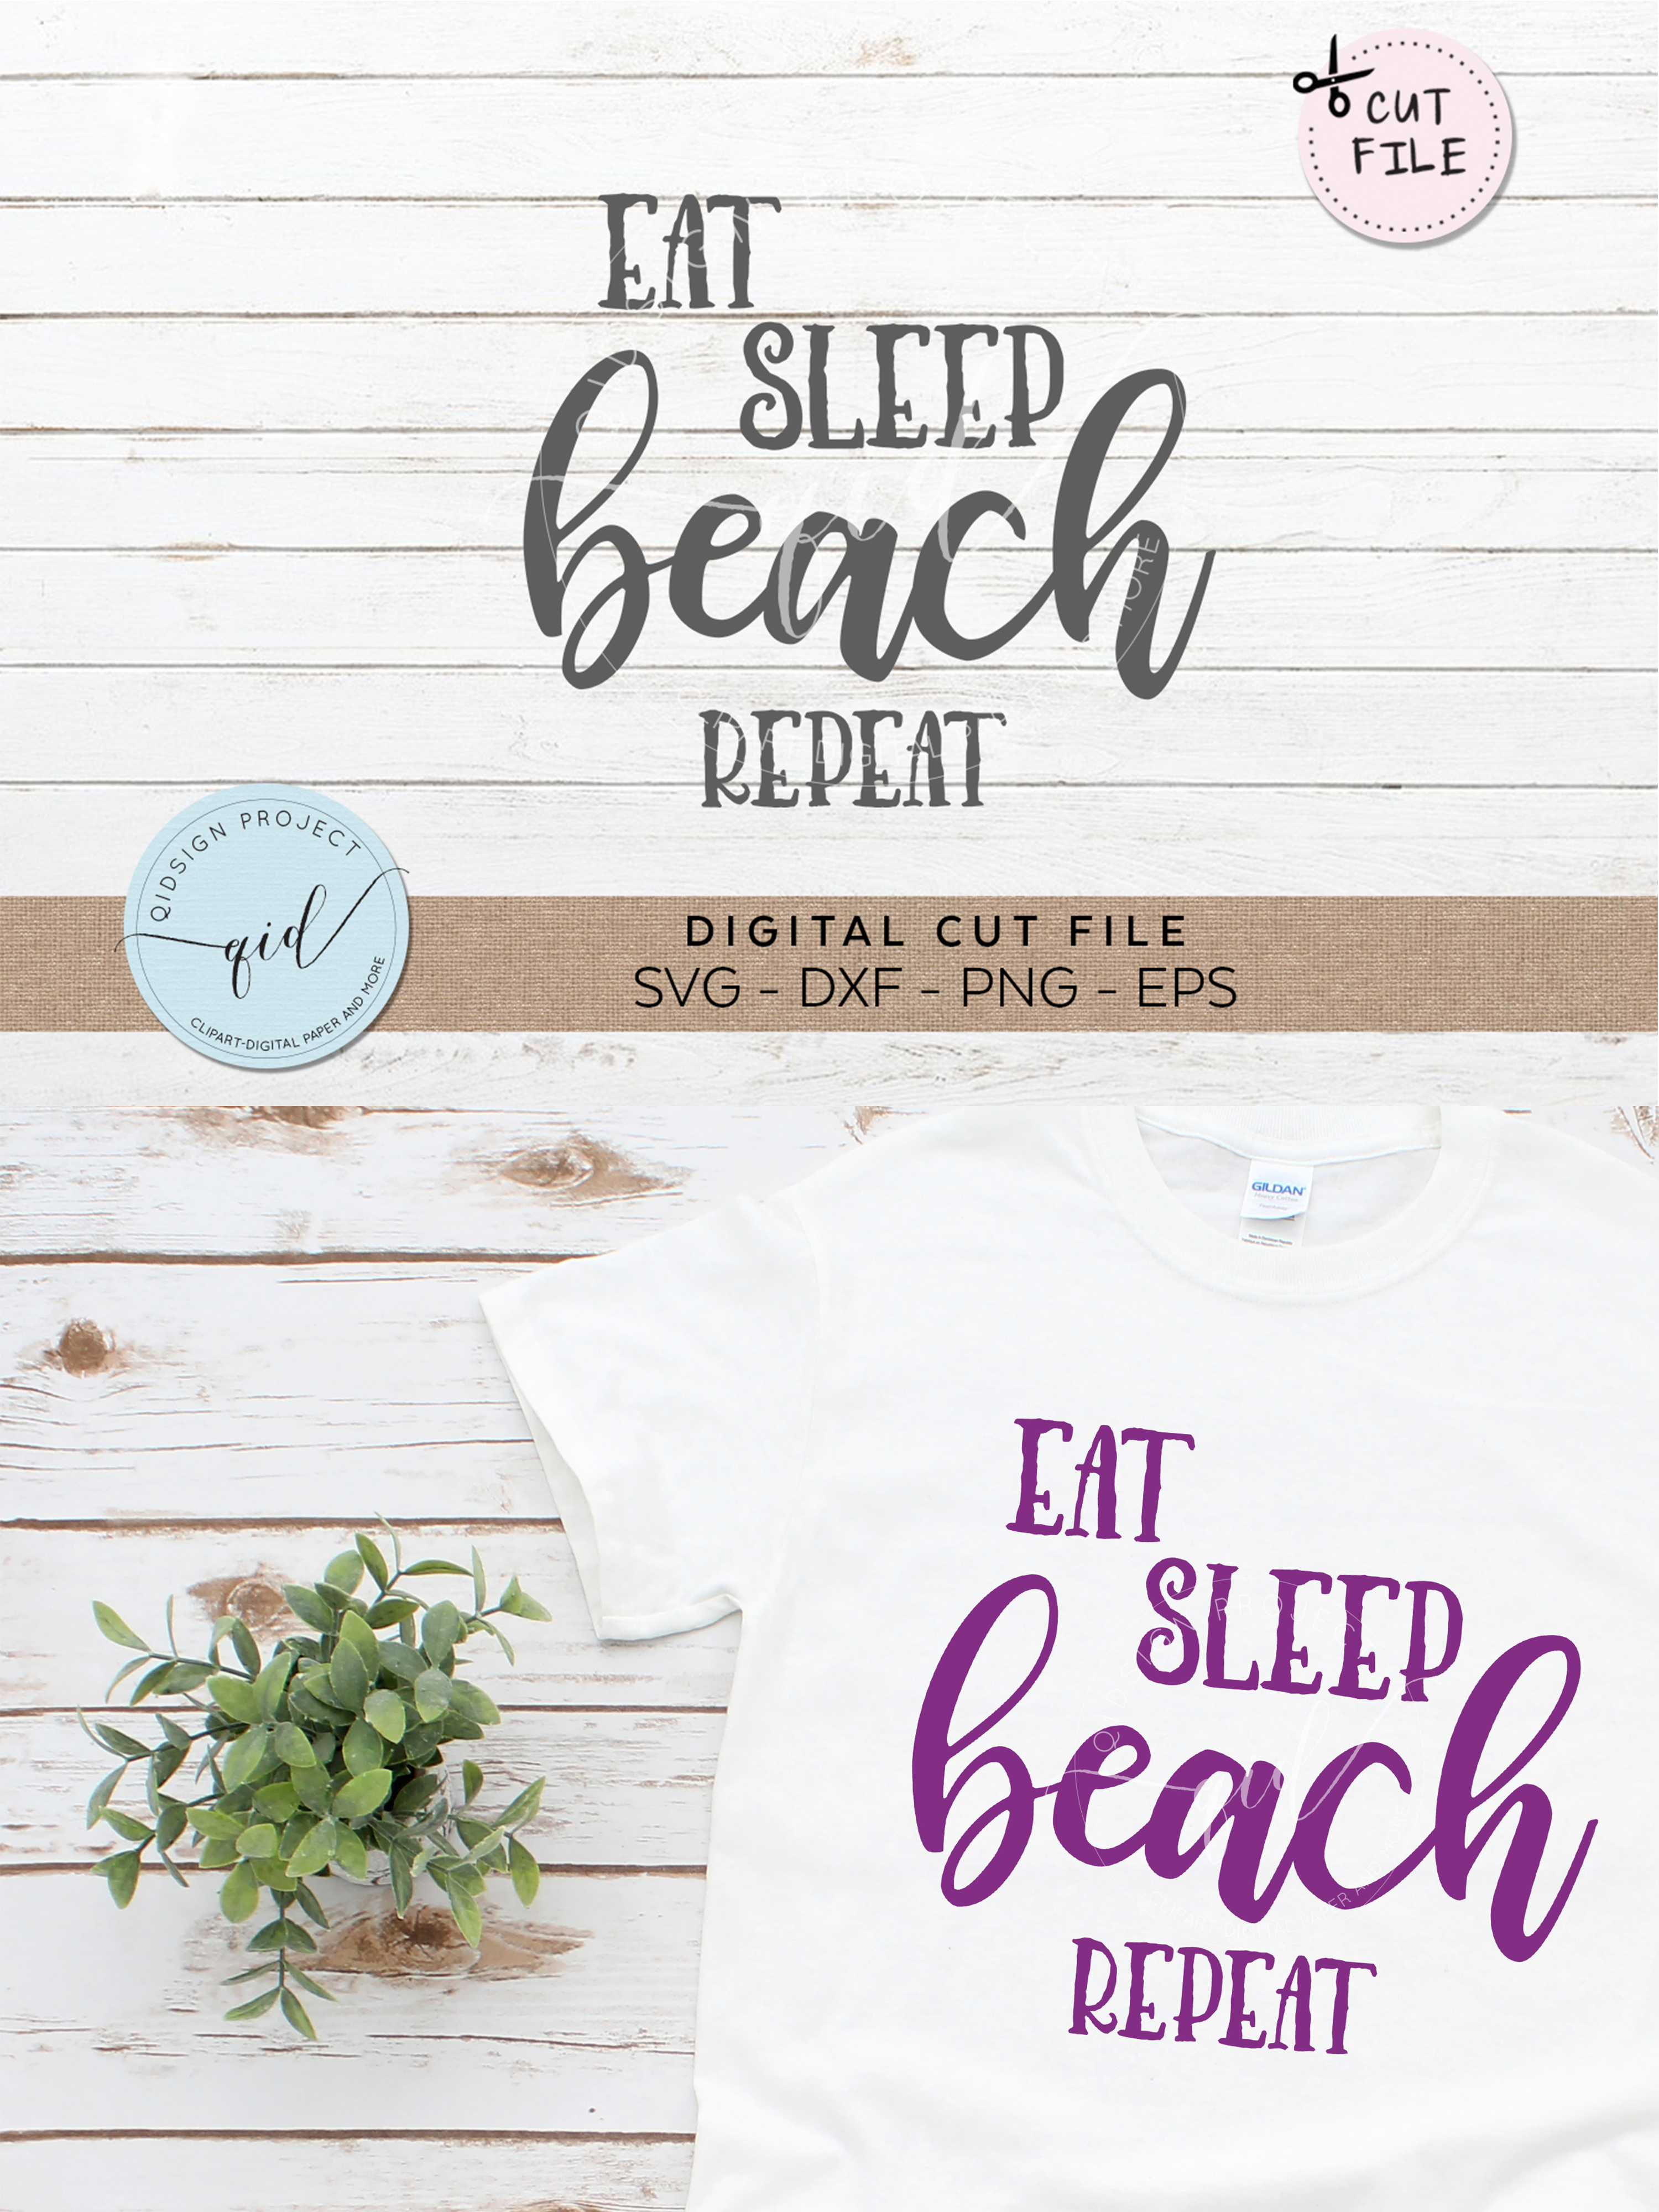 Eat Beach Sleep Repeat SVG DXF PNG EPS example image 2